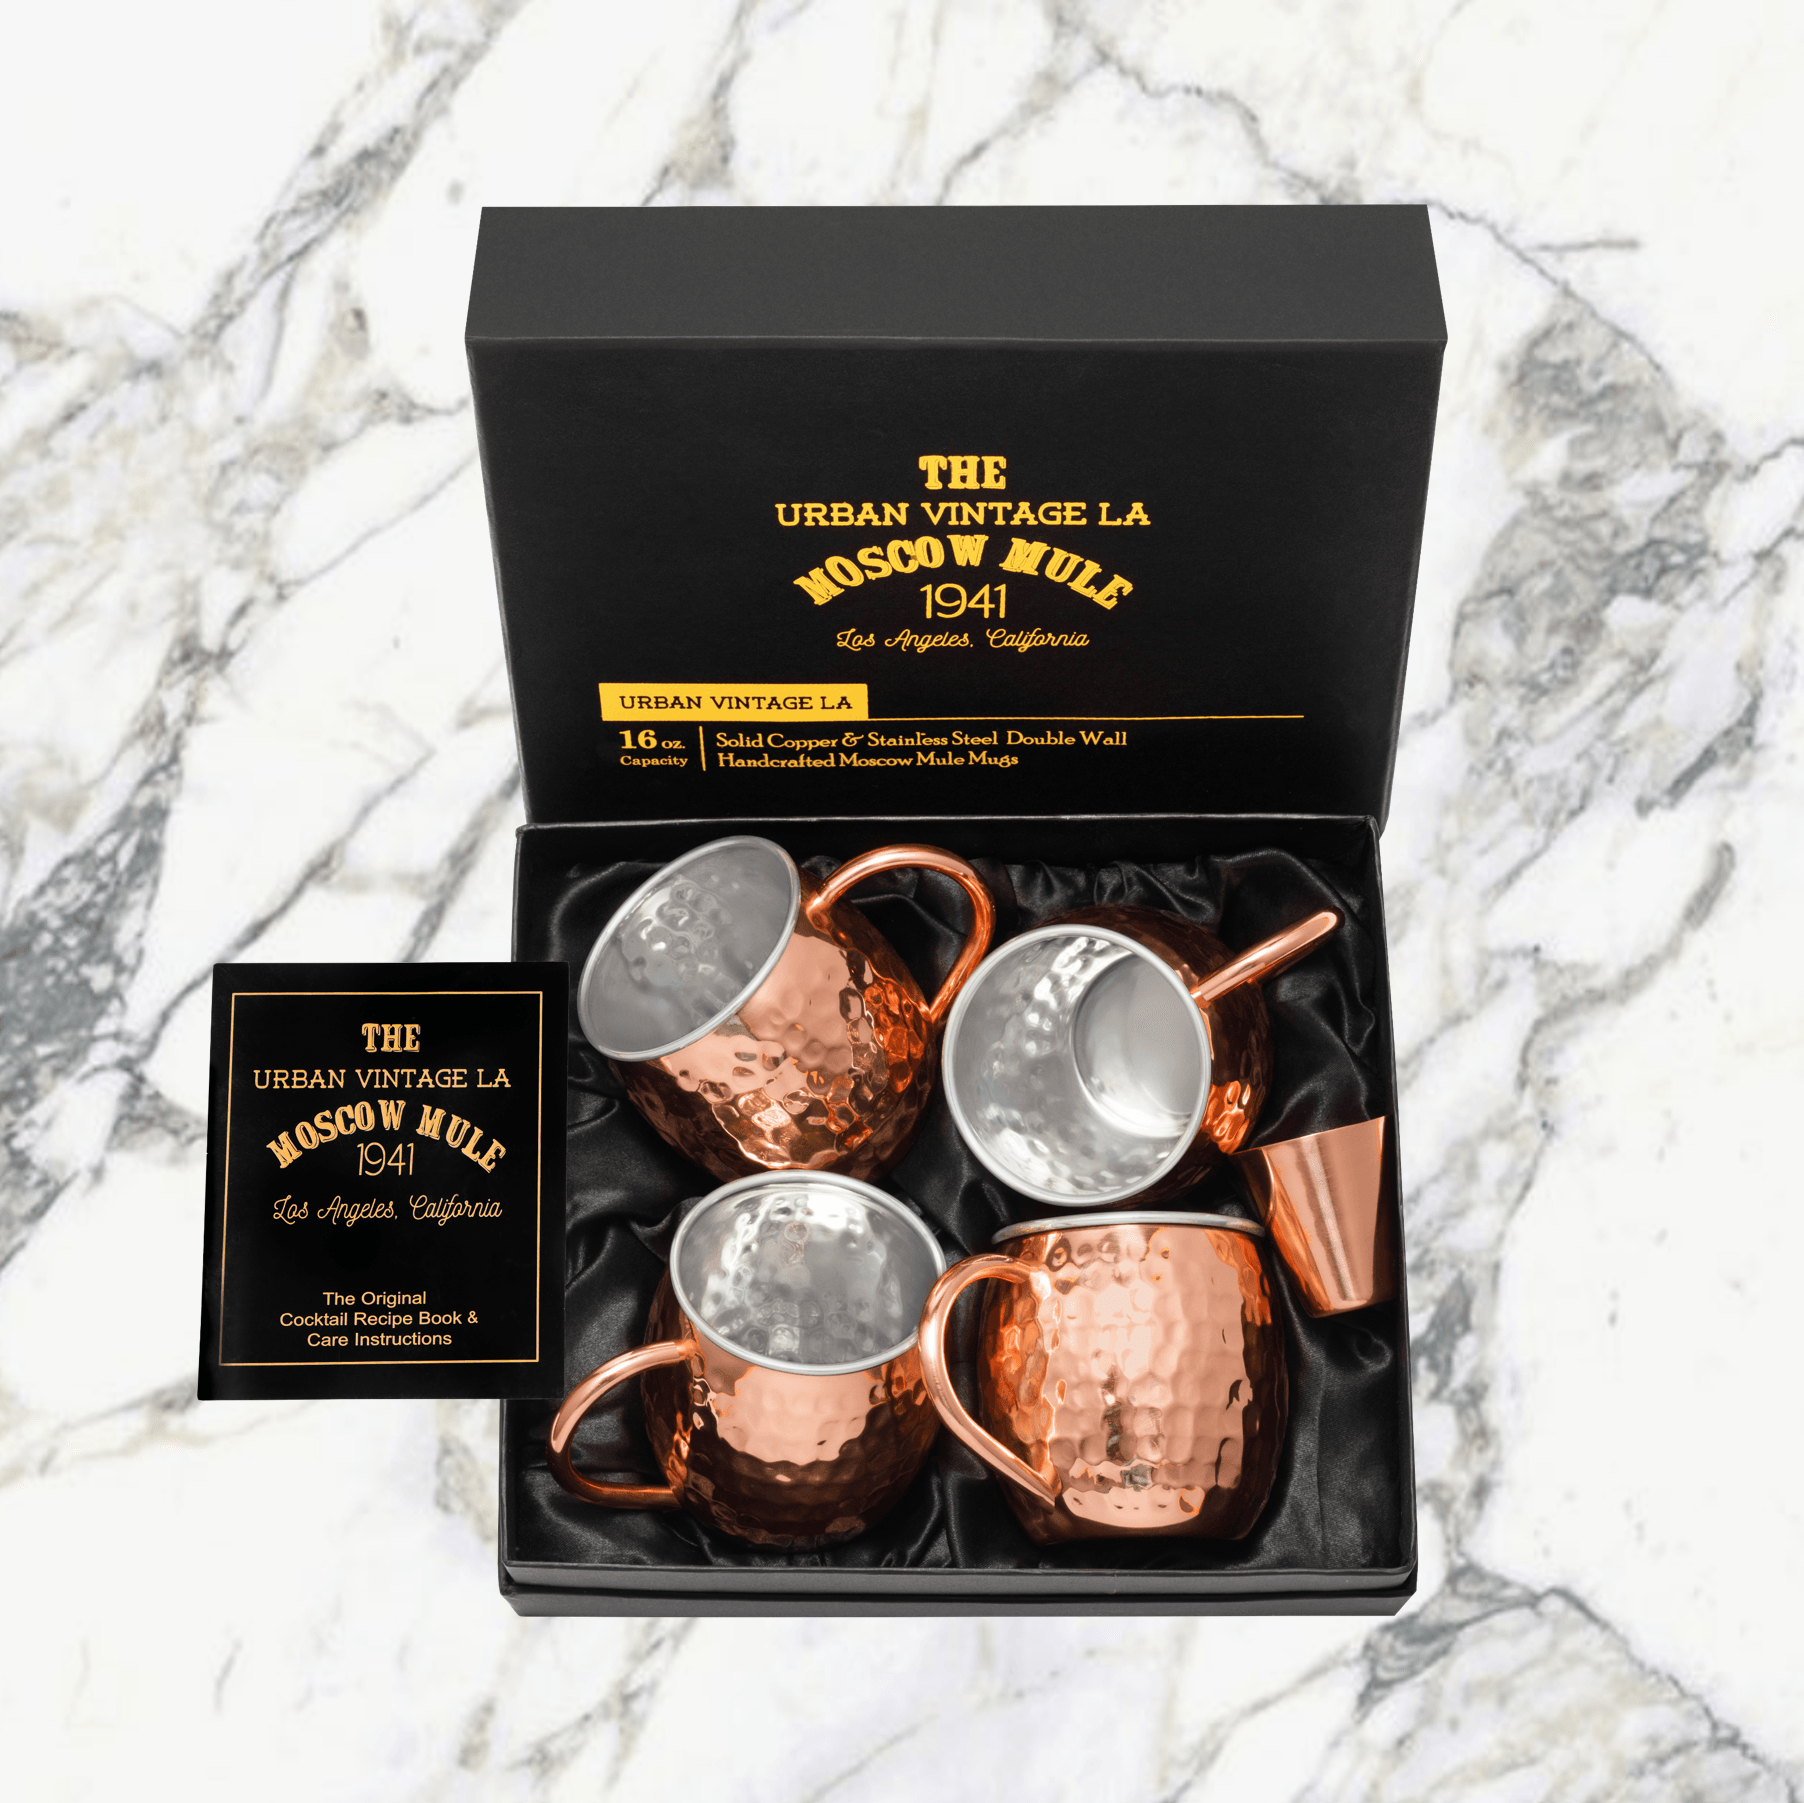 Urban Vintage LA Lined Moscow Mule Copper Mugs Gift Set With Gift Box Presentation Ready for Gifting